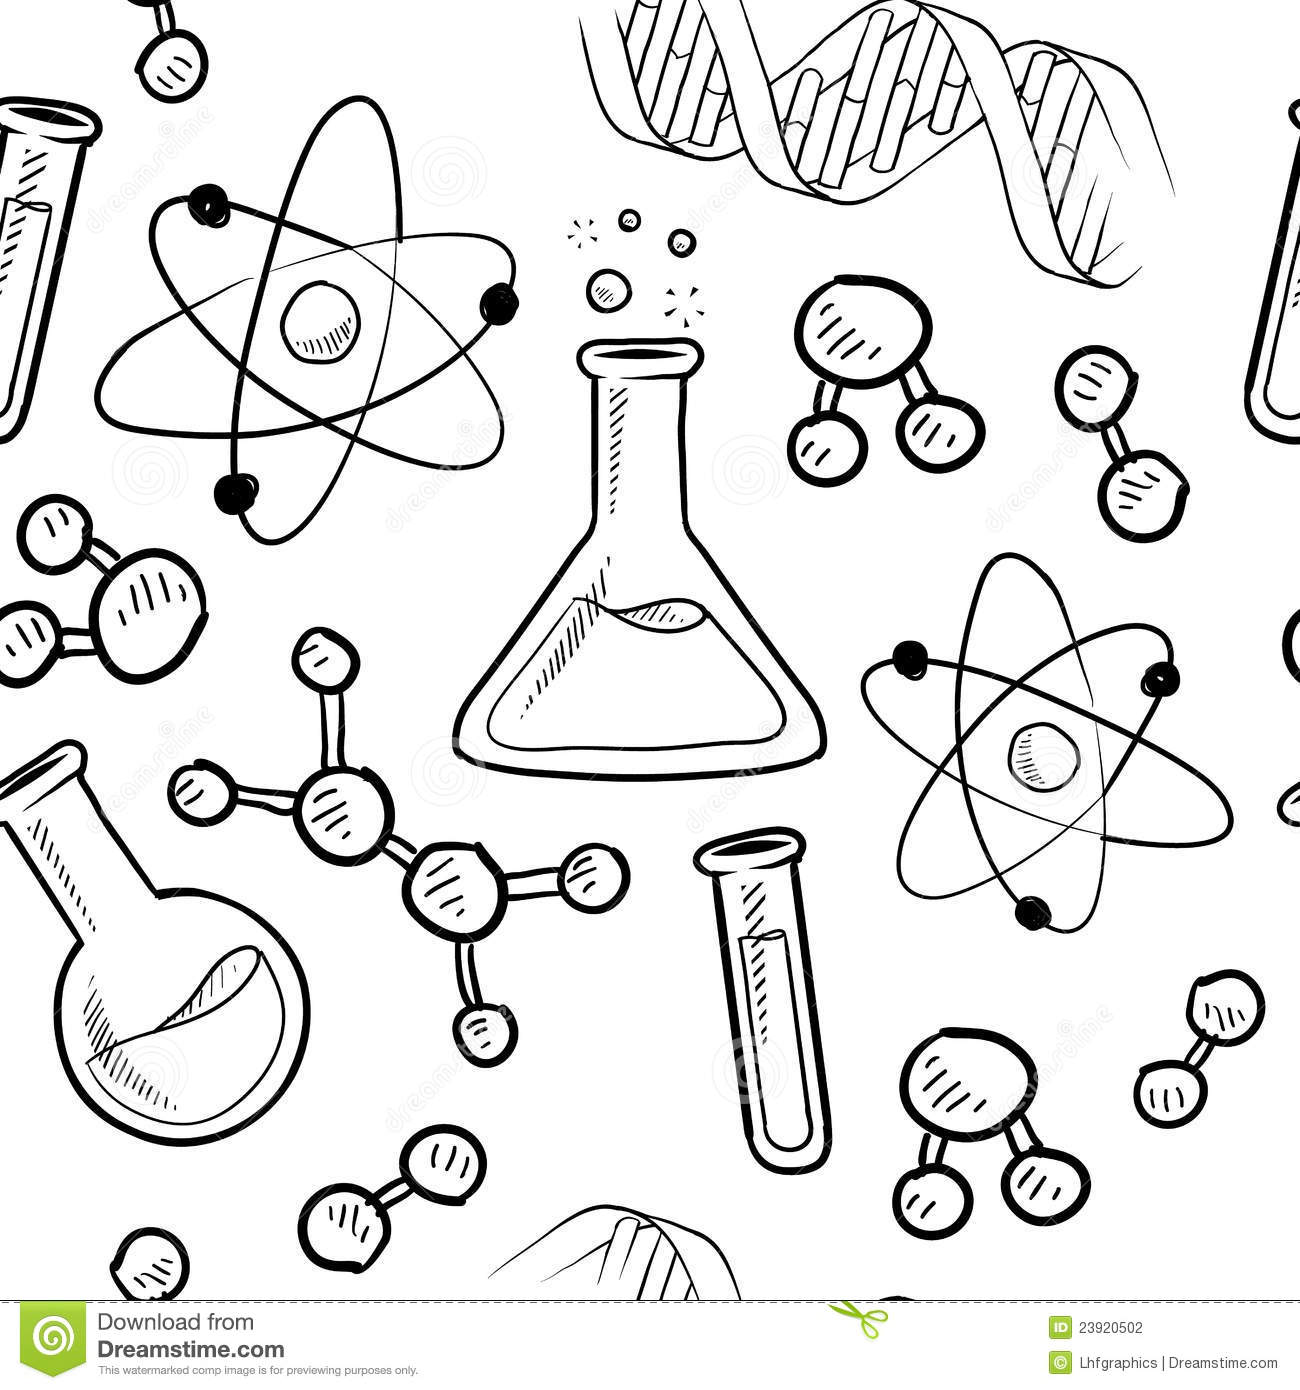 Science coloring #16, Download drawings